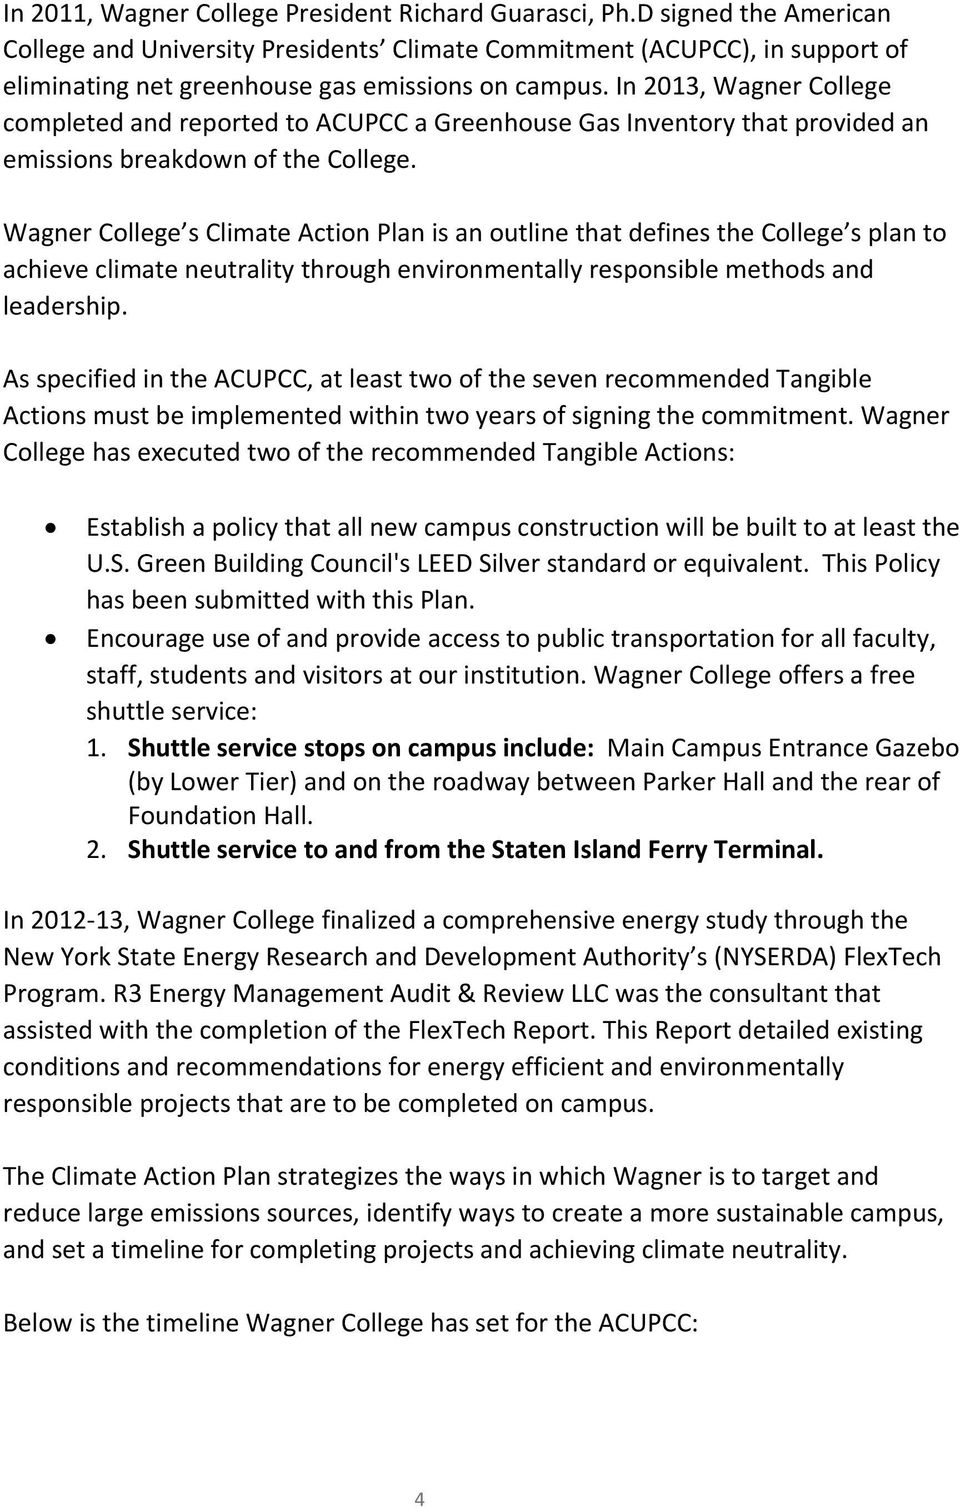 Wagner College Climate Action Plan: Goal of Carbon Neutral